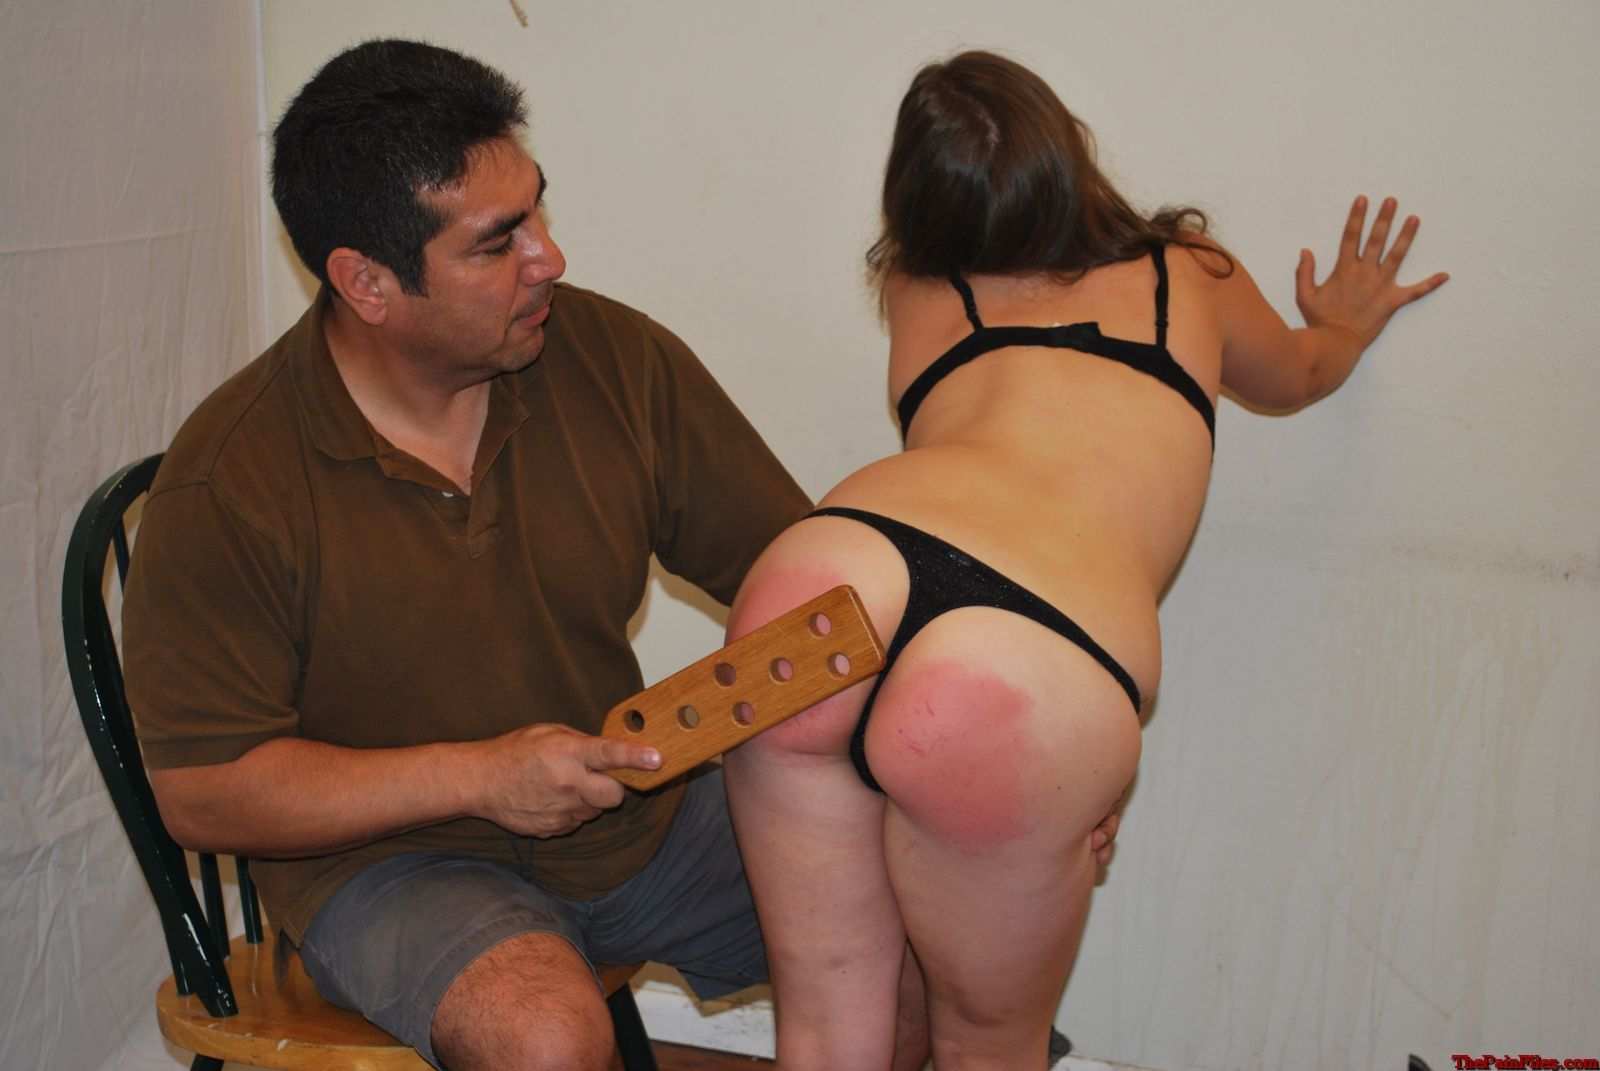 Punished wives bdsm sexy excellent gallery